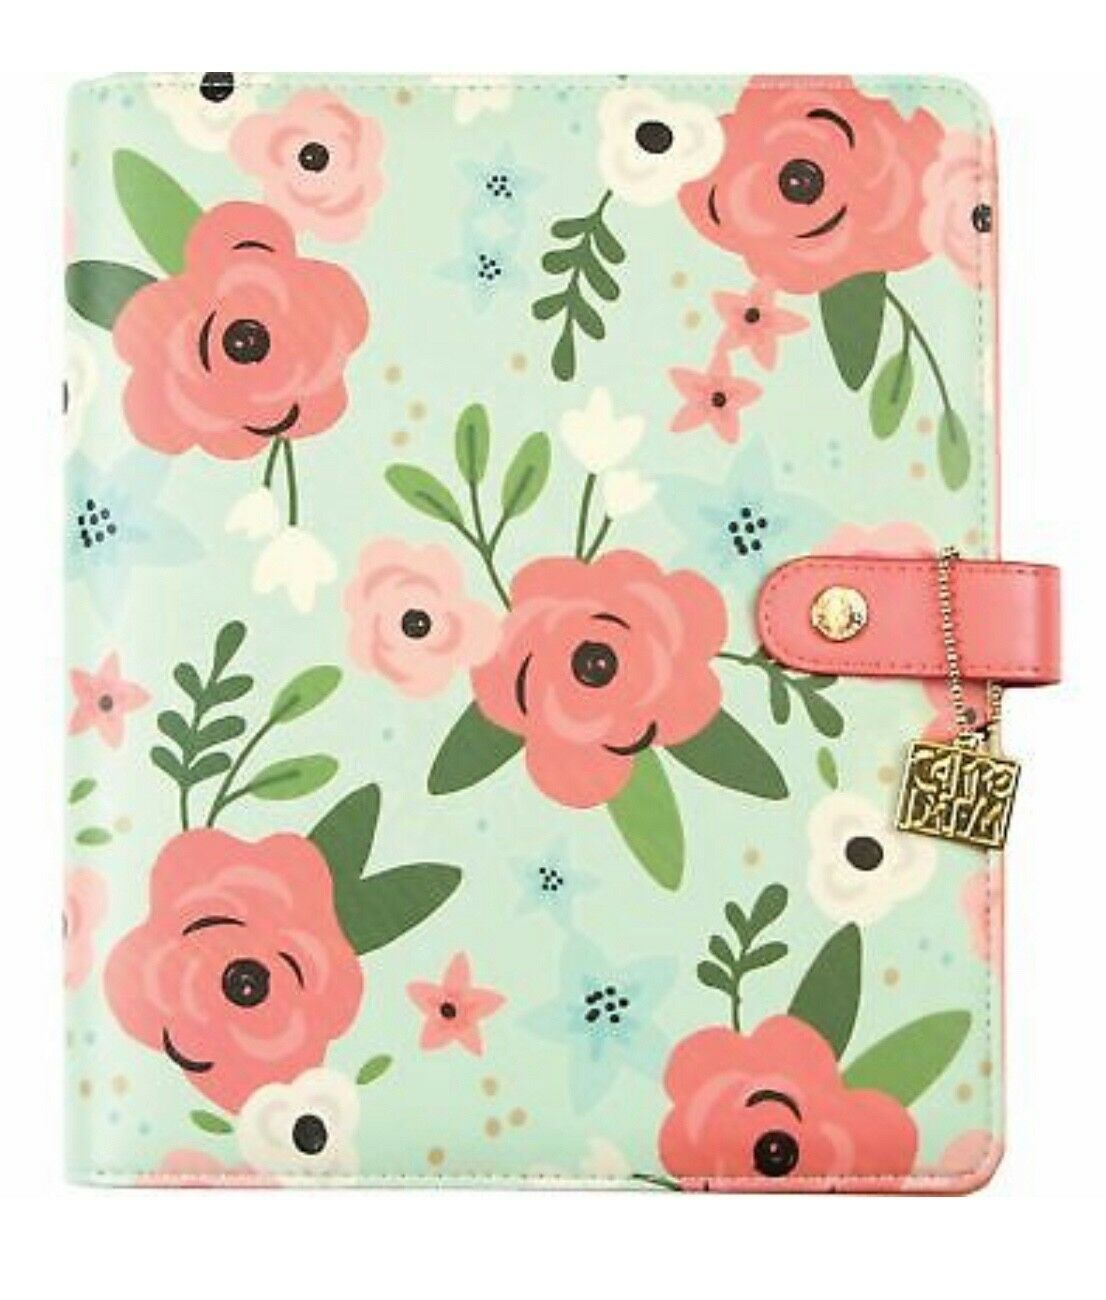 New Carpe Diem A5 Planner floral mint and pink . Condition is New